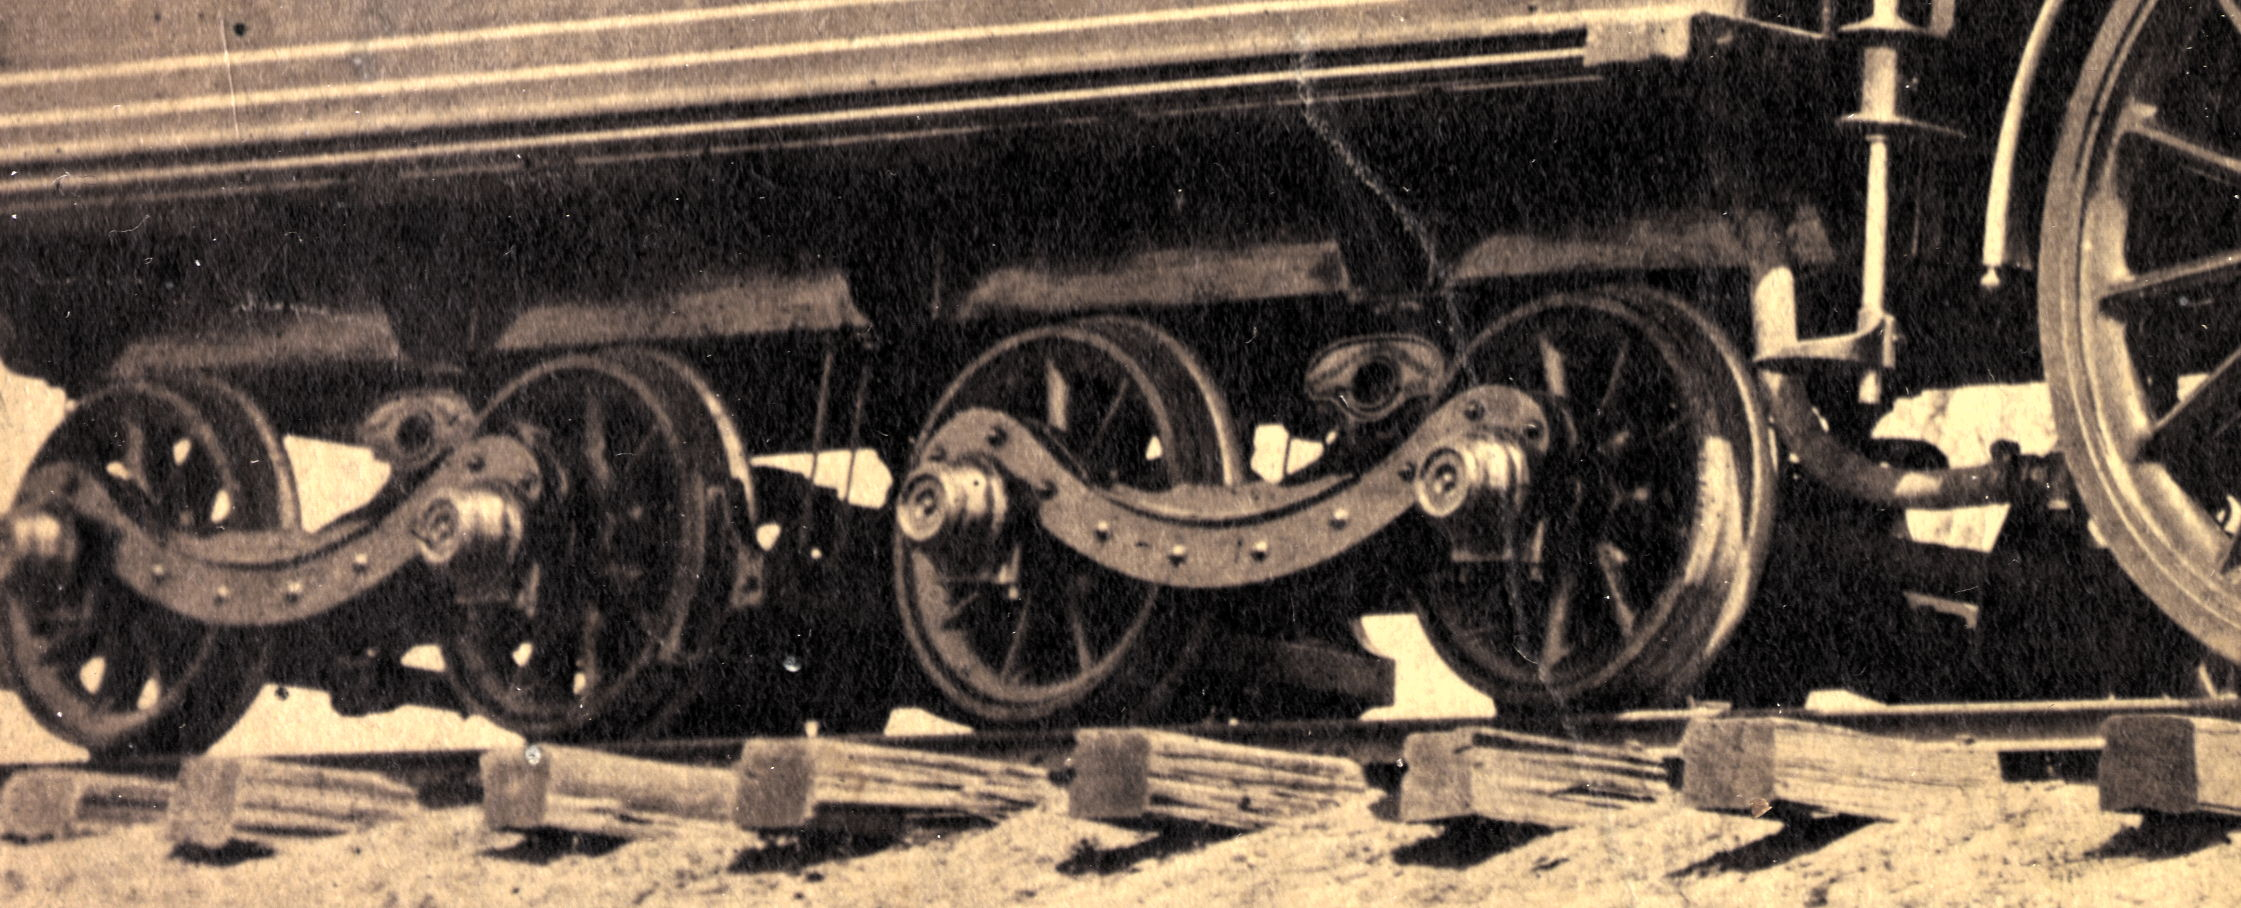 Antelope's tender trucks, detail